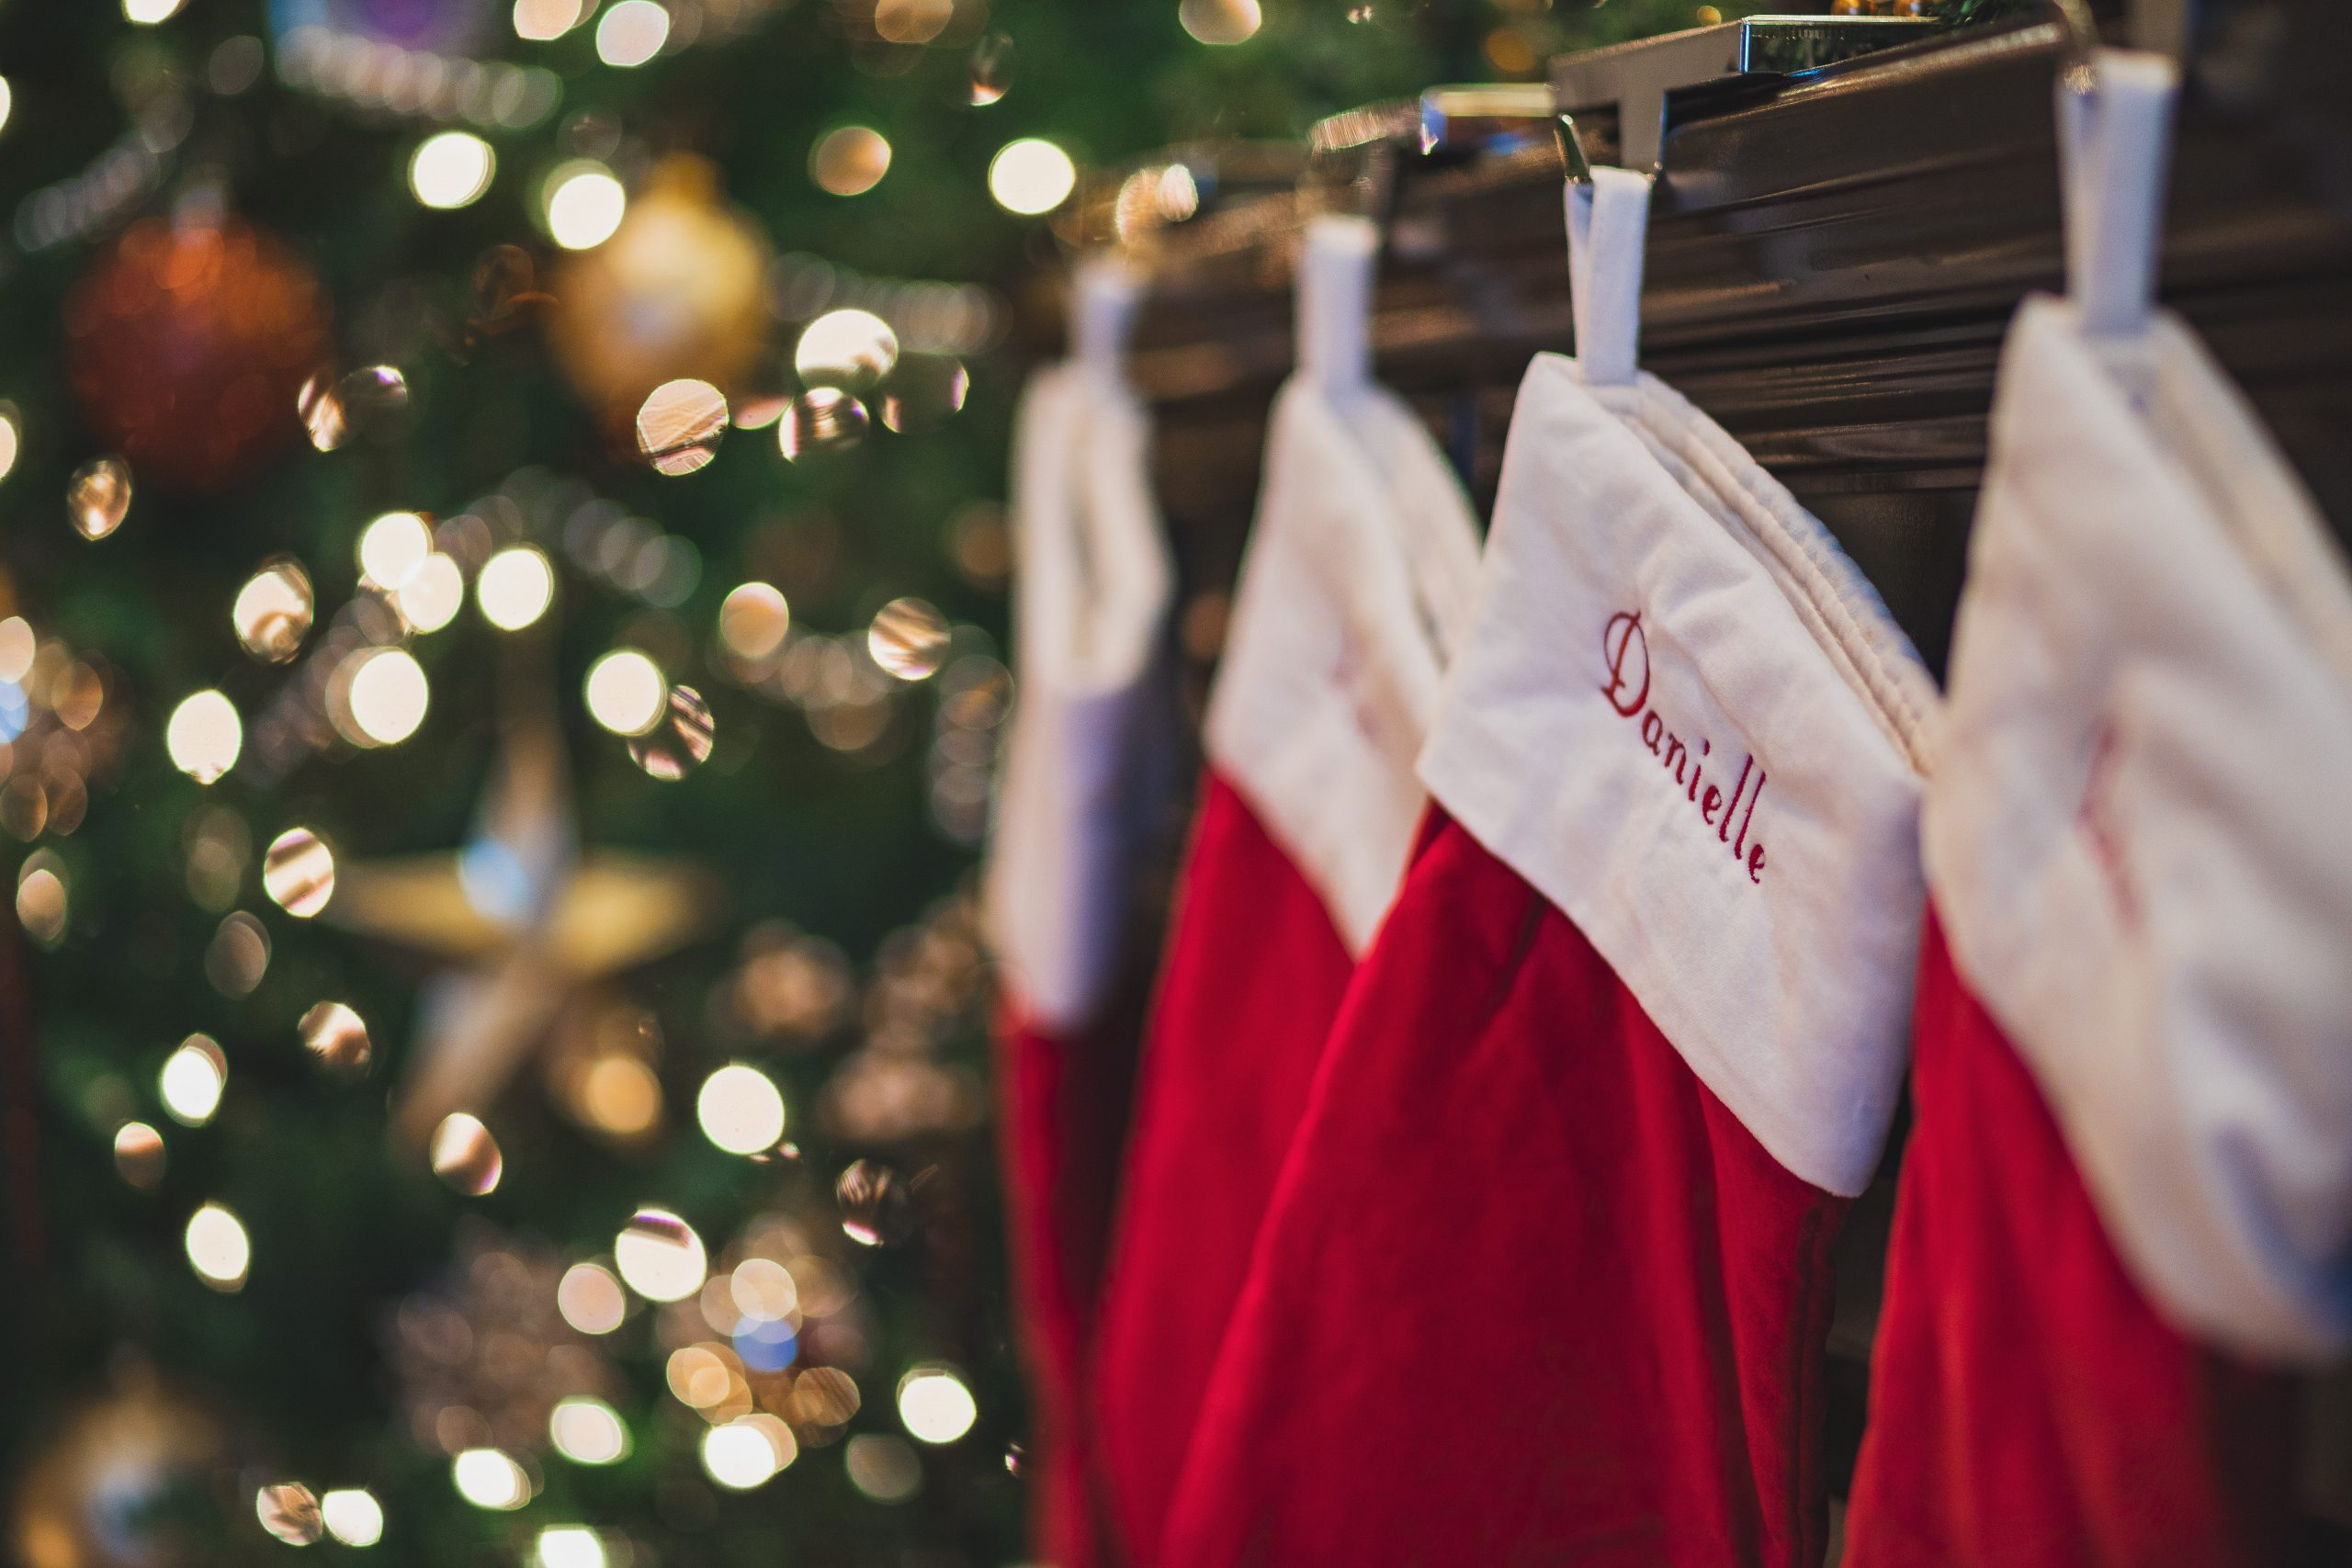 personalized stockings hung on mantel